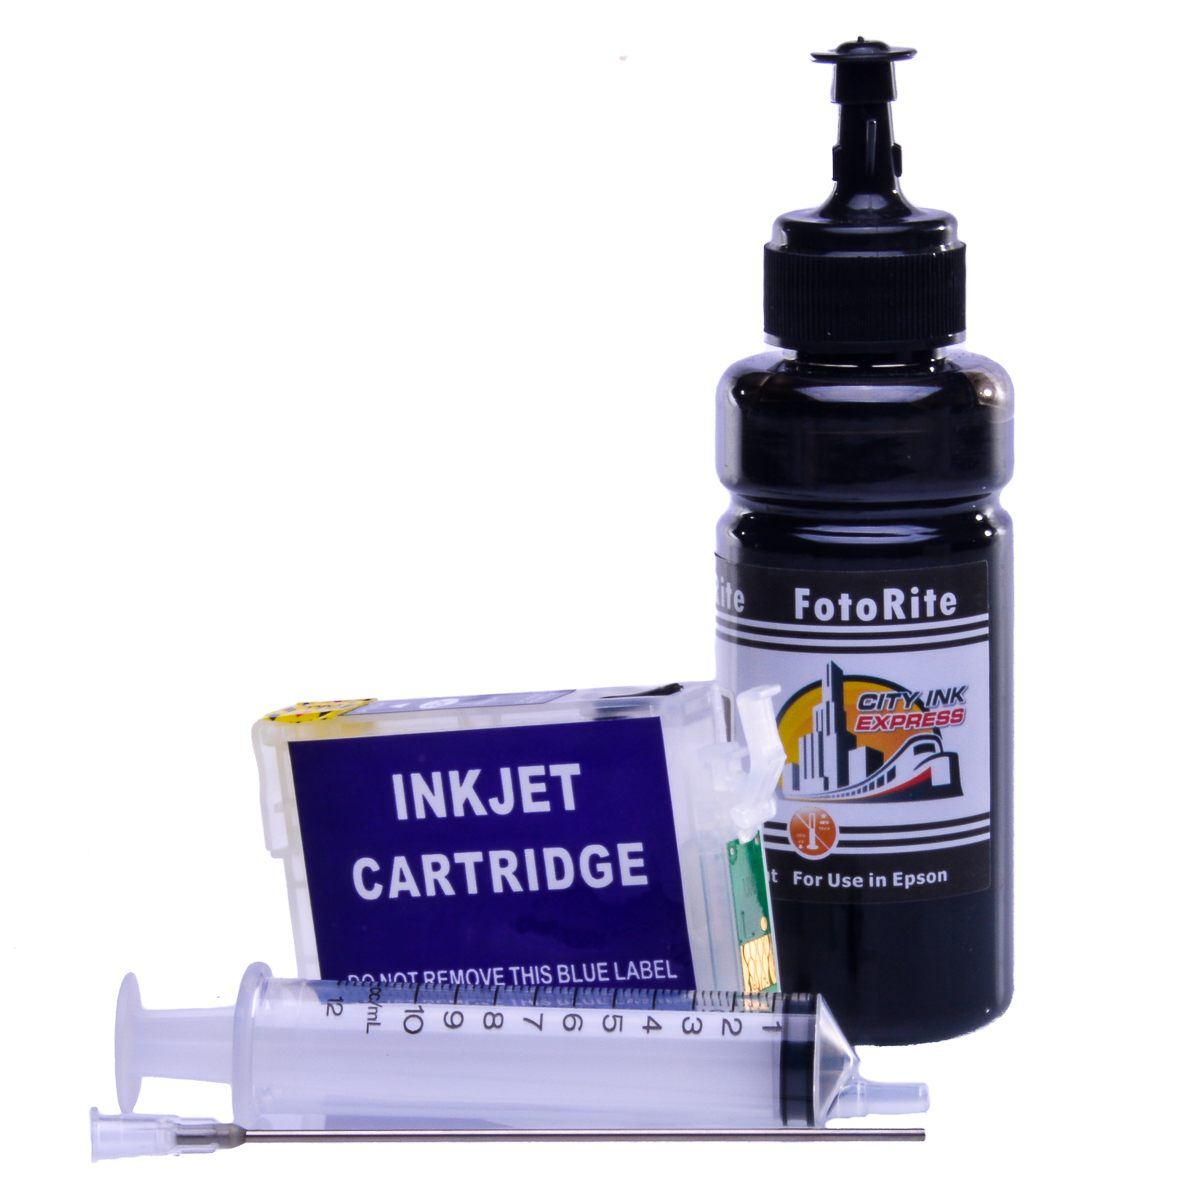 Refillable pigment Cheap printer cartridges for Epson Stylus SX209 C13T07114010 T0711 Black